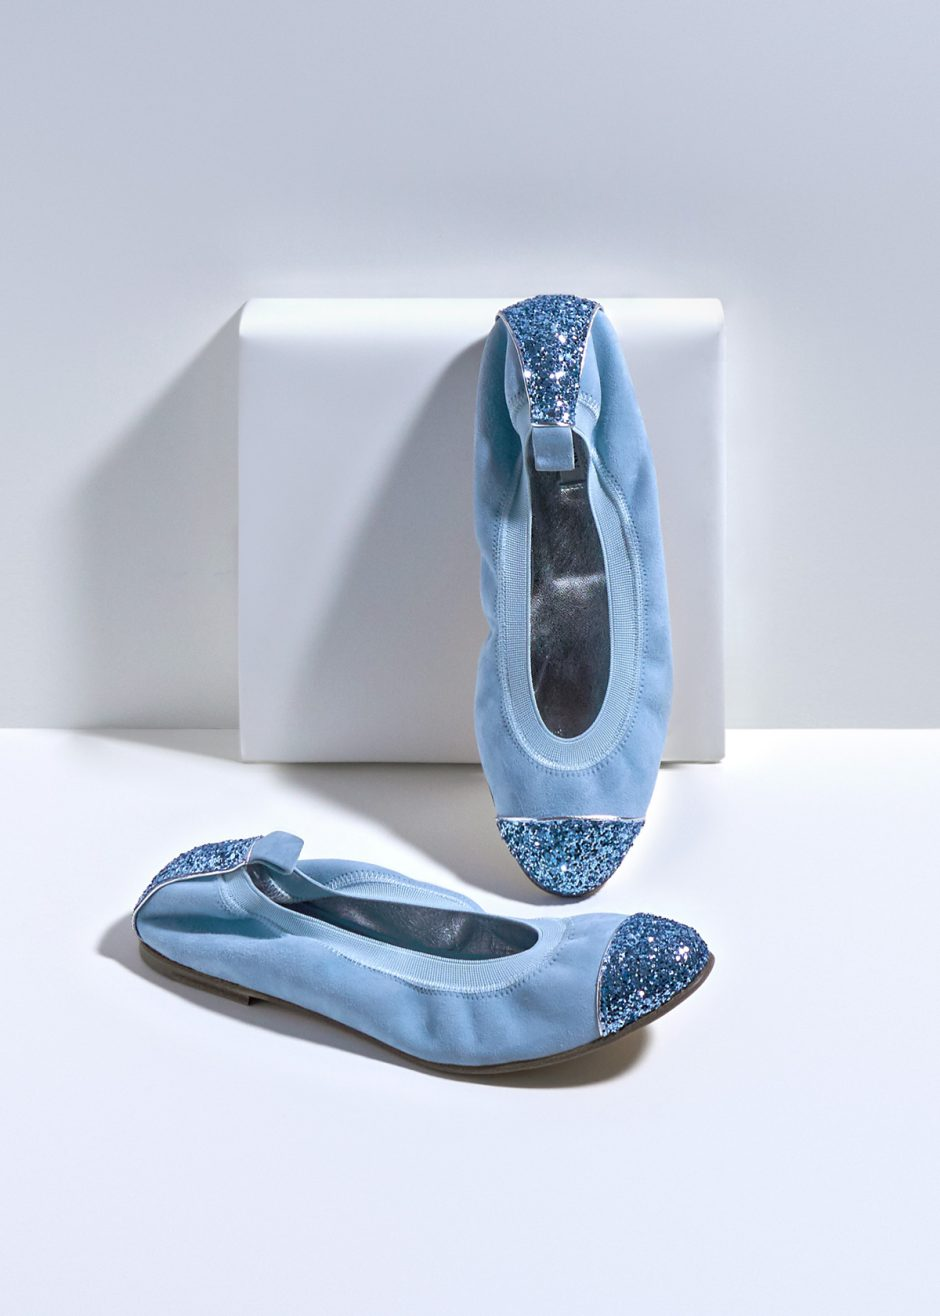 Kate – Ballet flat sky blue kidskin suede with jeans glitter toe cap and heel